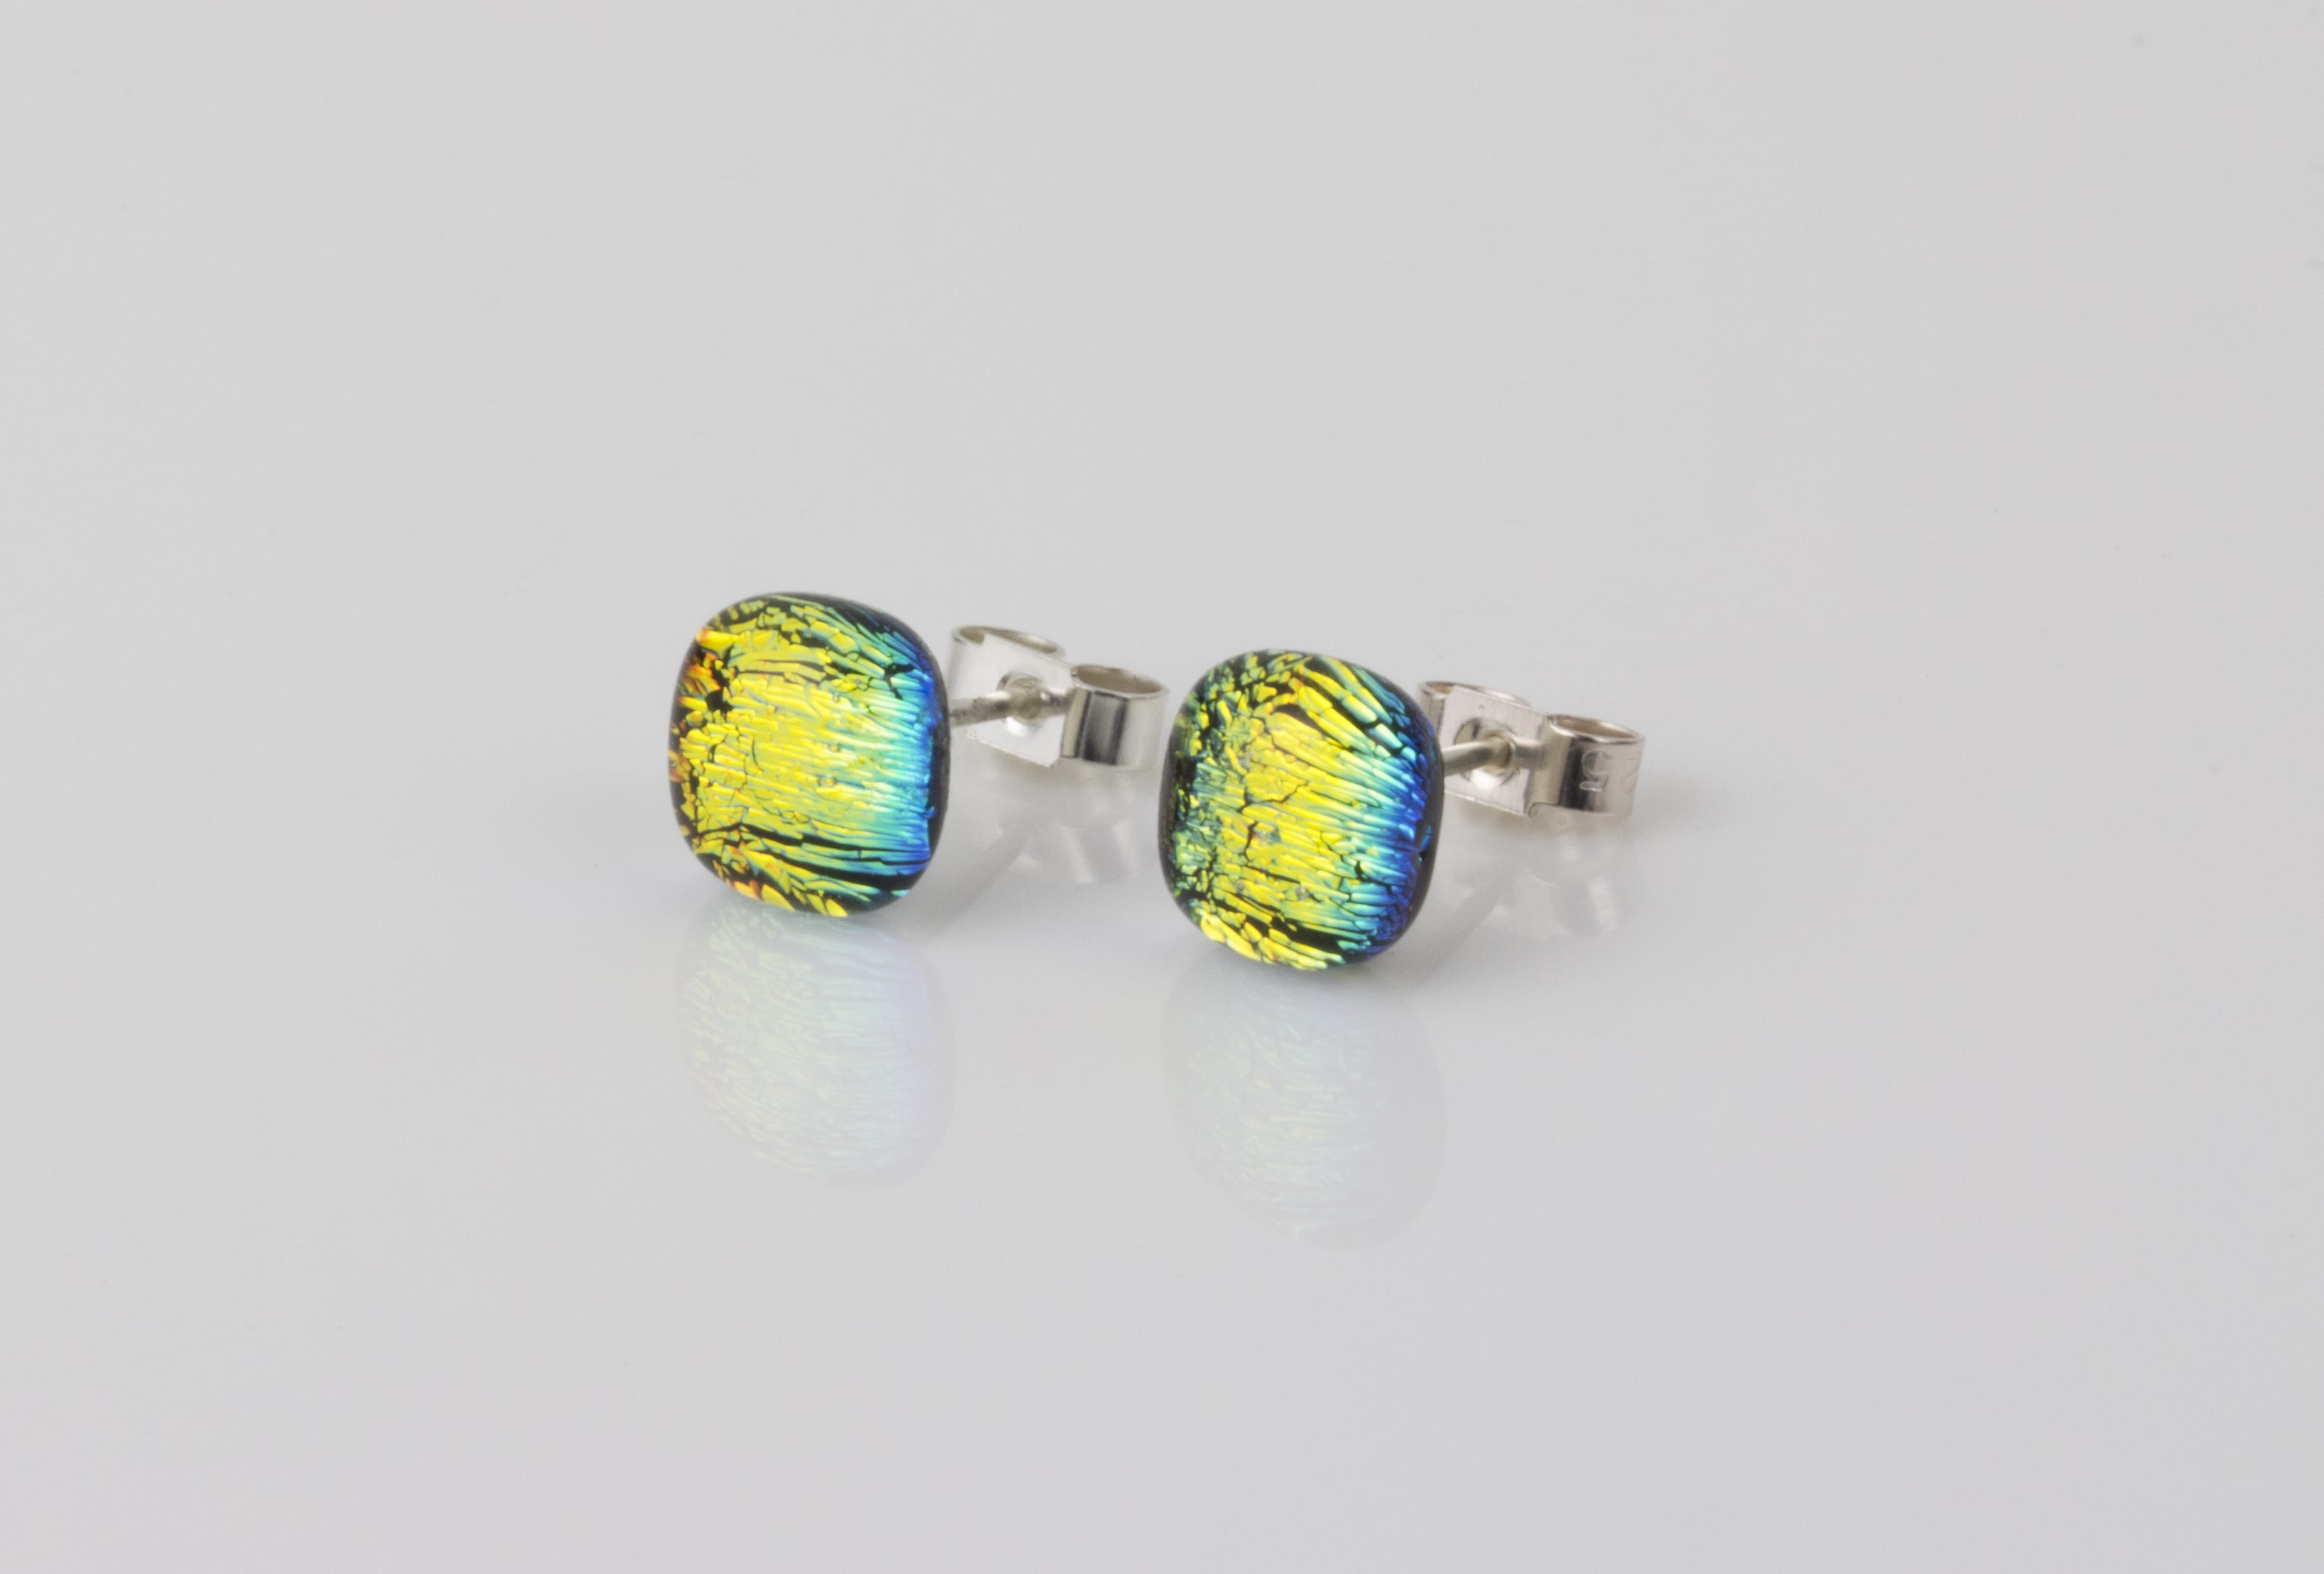 Dichroic glass jewellery uk, handmade stud earrings with rainbow colours dichroic glass, round, sterling glass 7-9mm, silver posts.